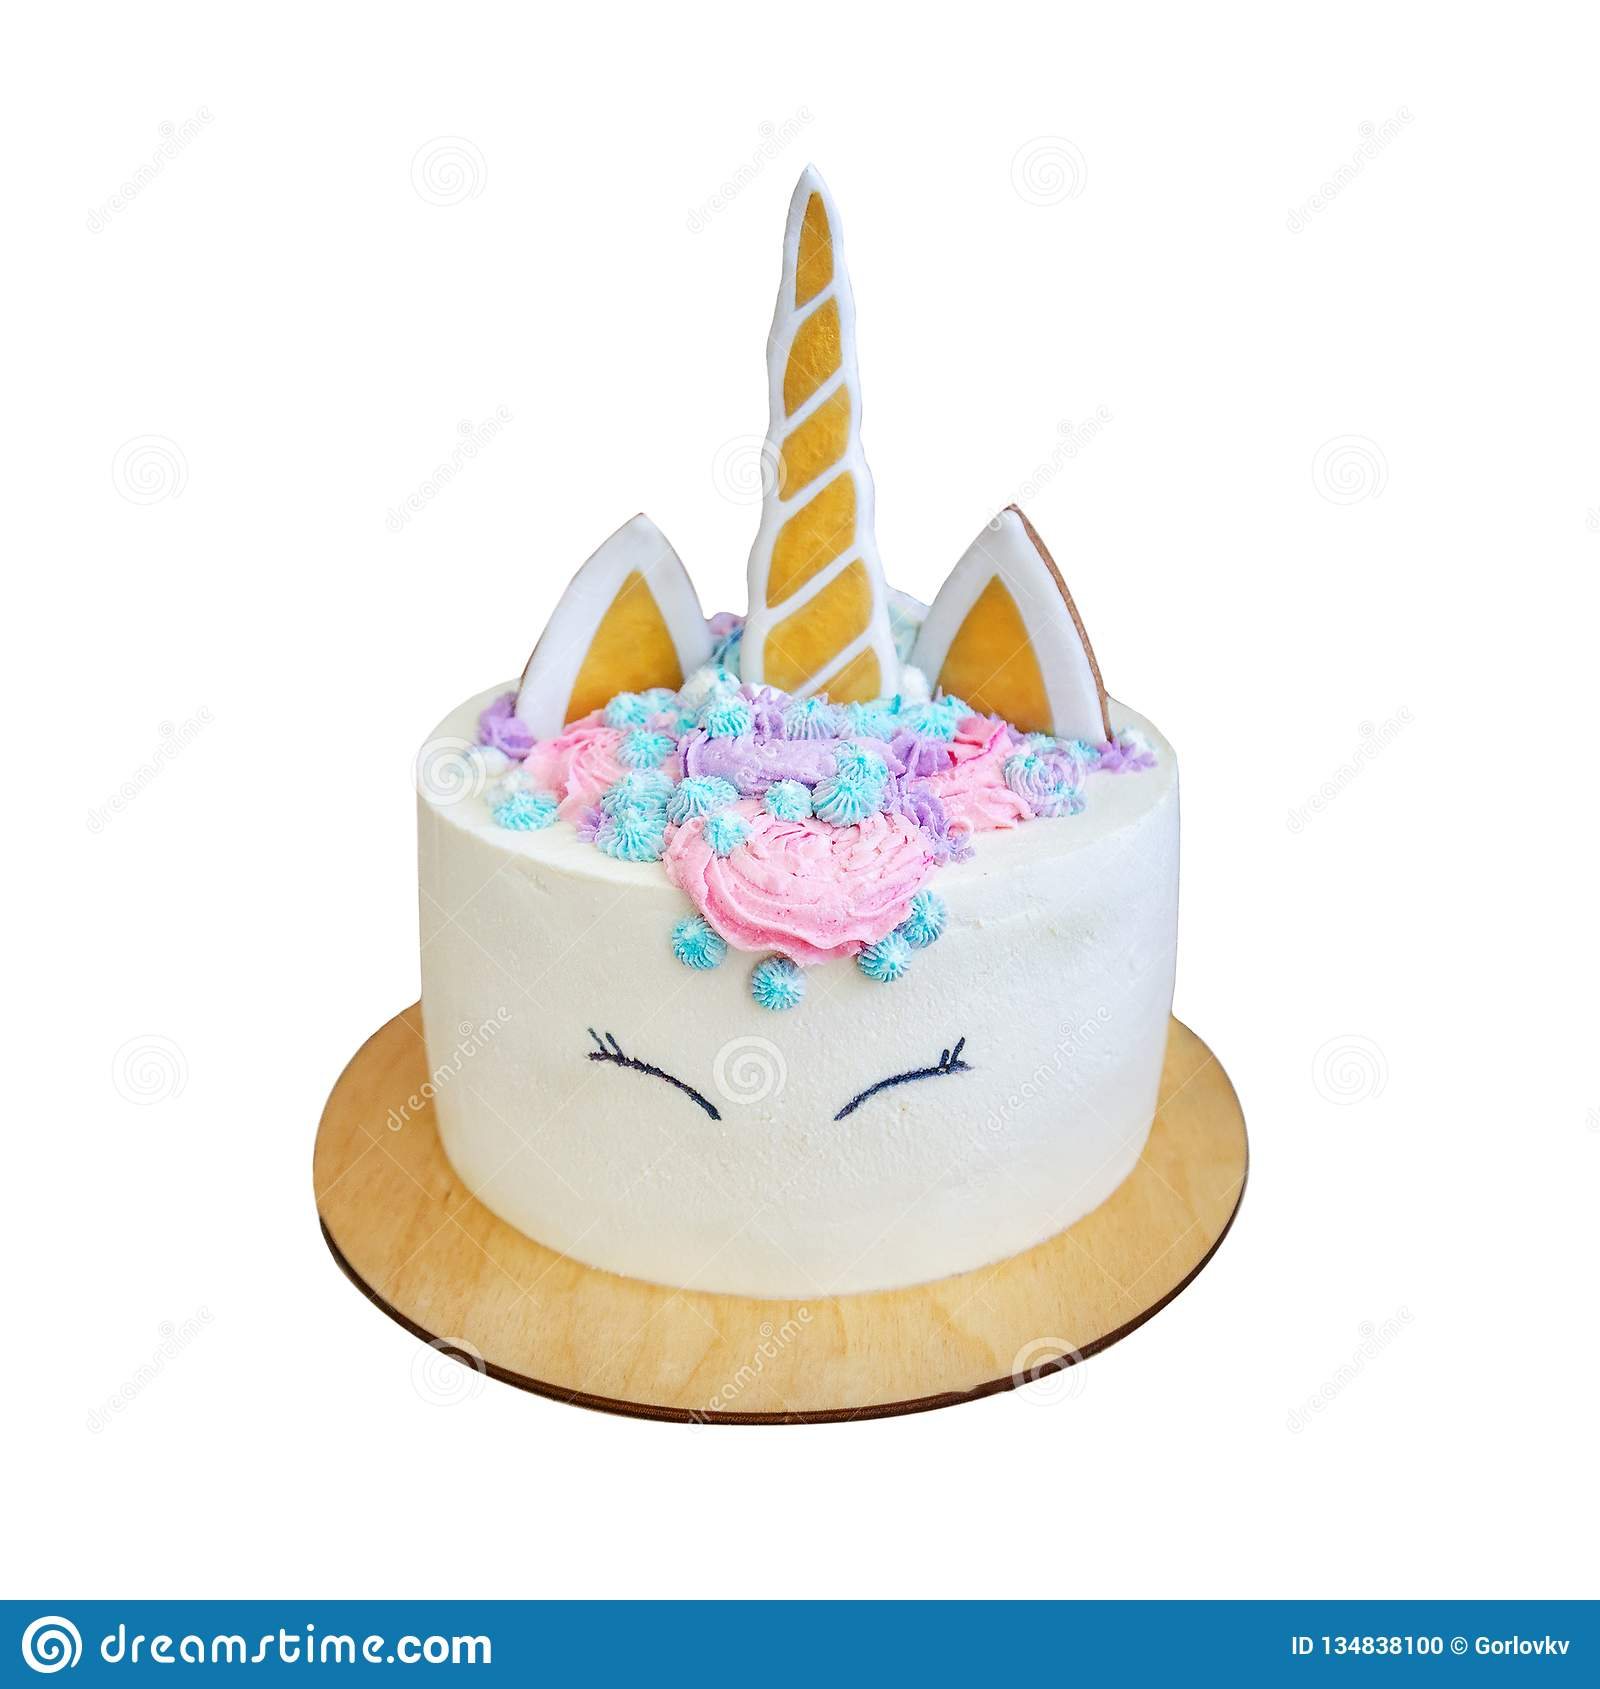 Beautiful Bright Delicious Birthday Cake For Girls Decorated In Form Of Fantasy Unicorn Isolated On White